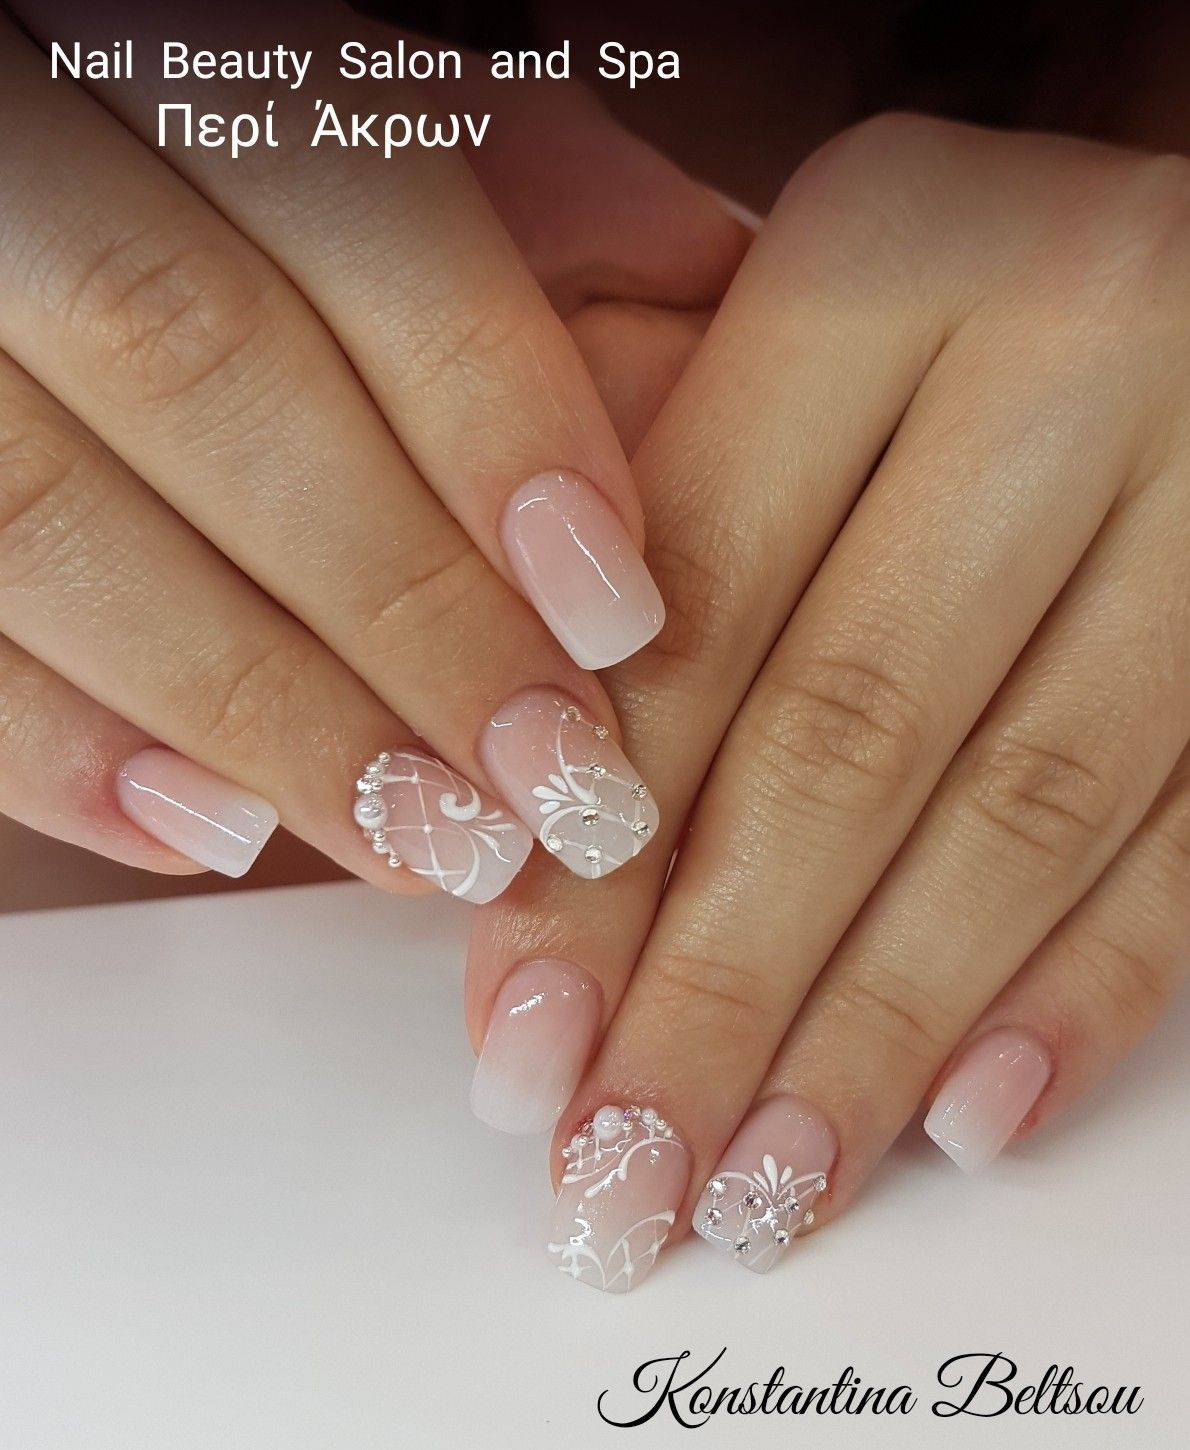 Salon Nails, Bridal nails, square Oval Shape, Babyboomer